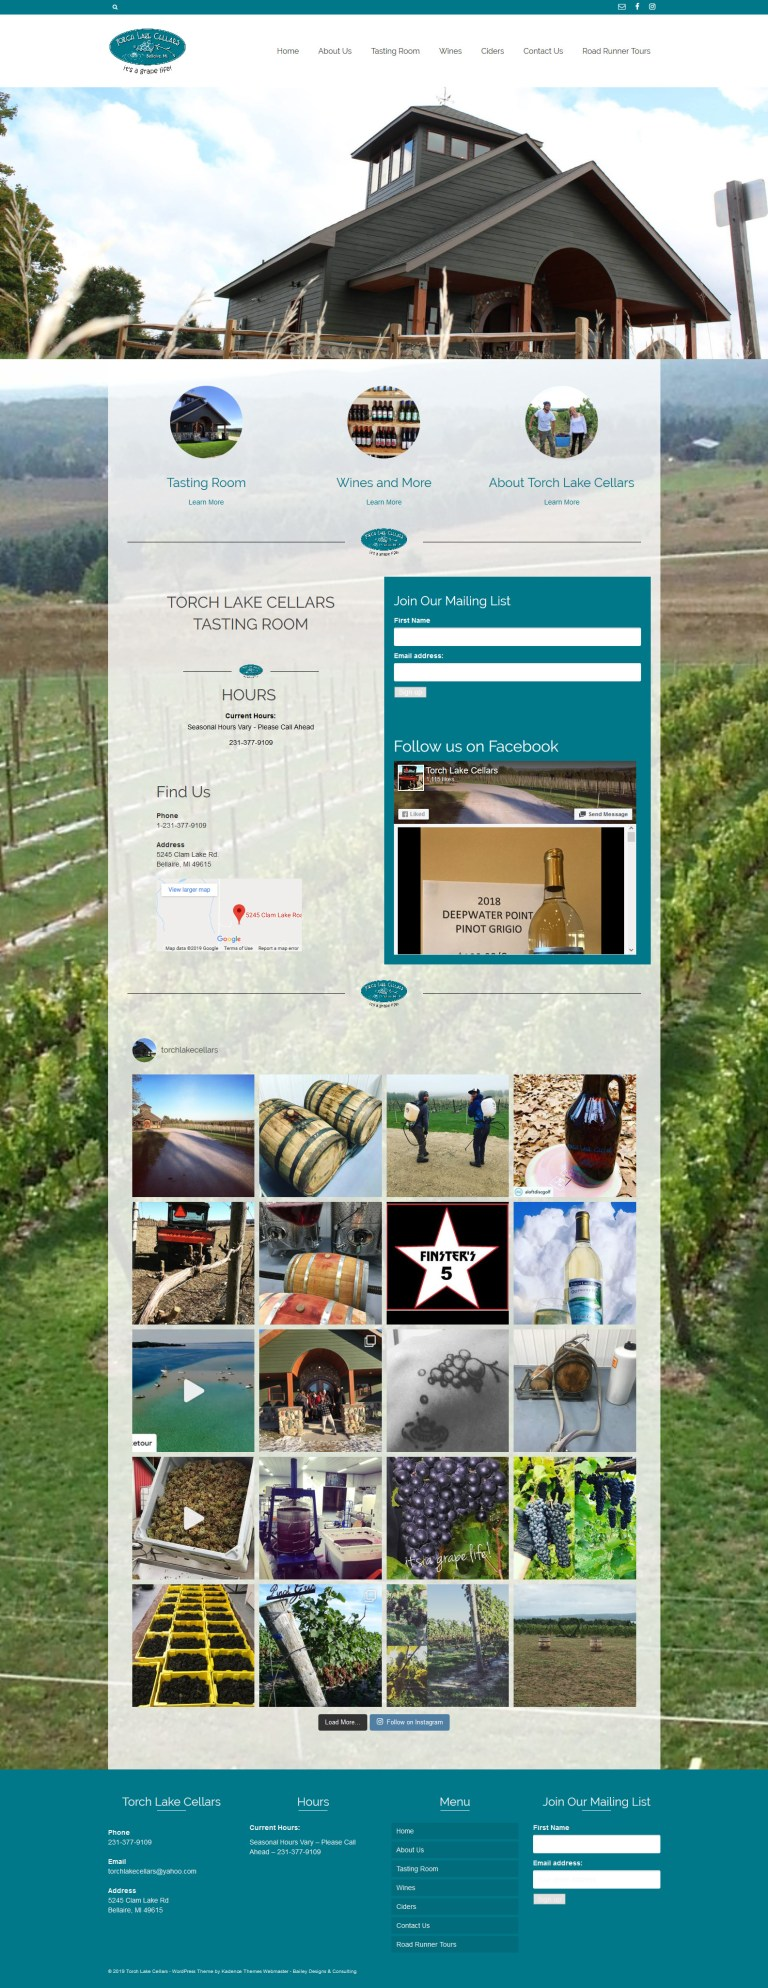 Torch Lake Cellars – website design